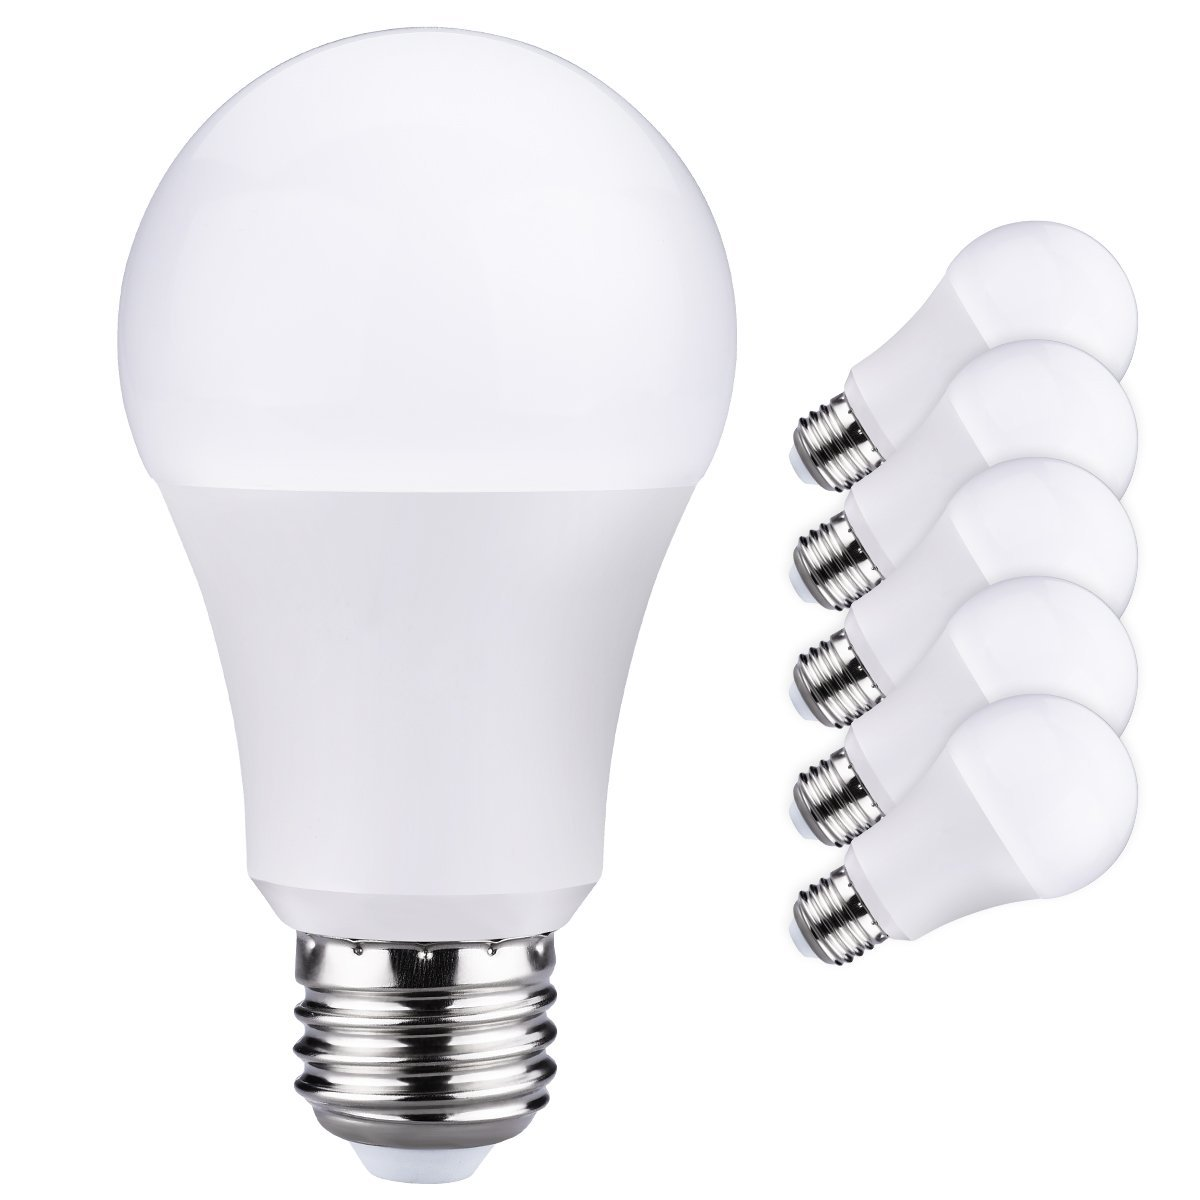 Litom Light Bulbs, 9W (60W Equivalent) 3000K A19 LED Bulbs, 800 Lumens Soft White E26 LED Lighting 6 Pack